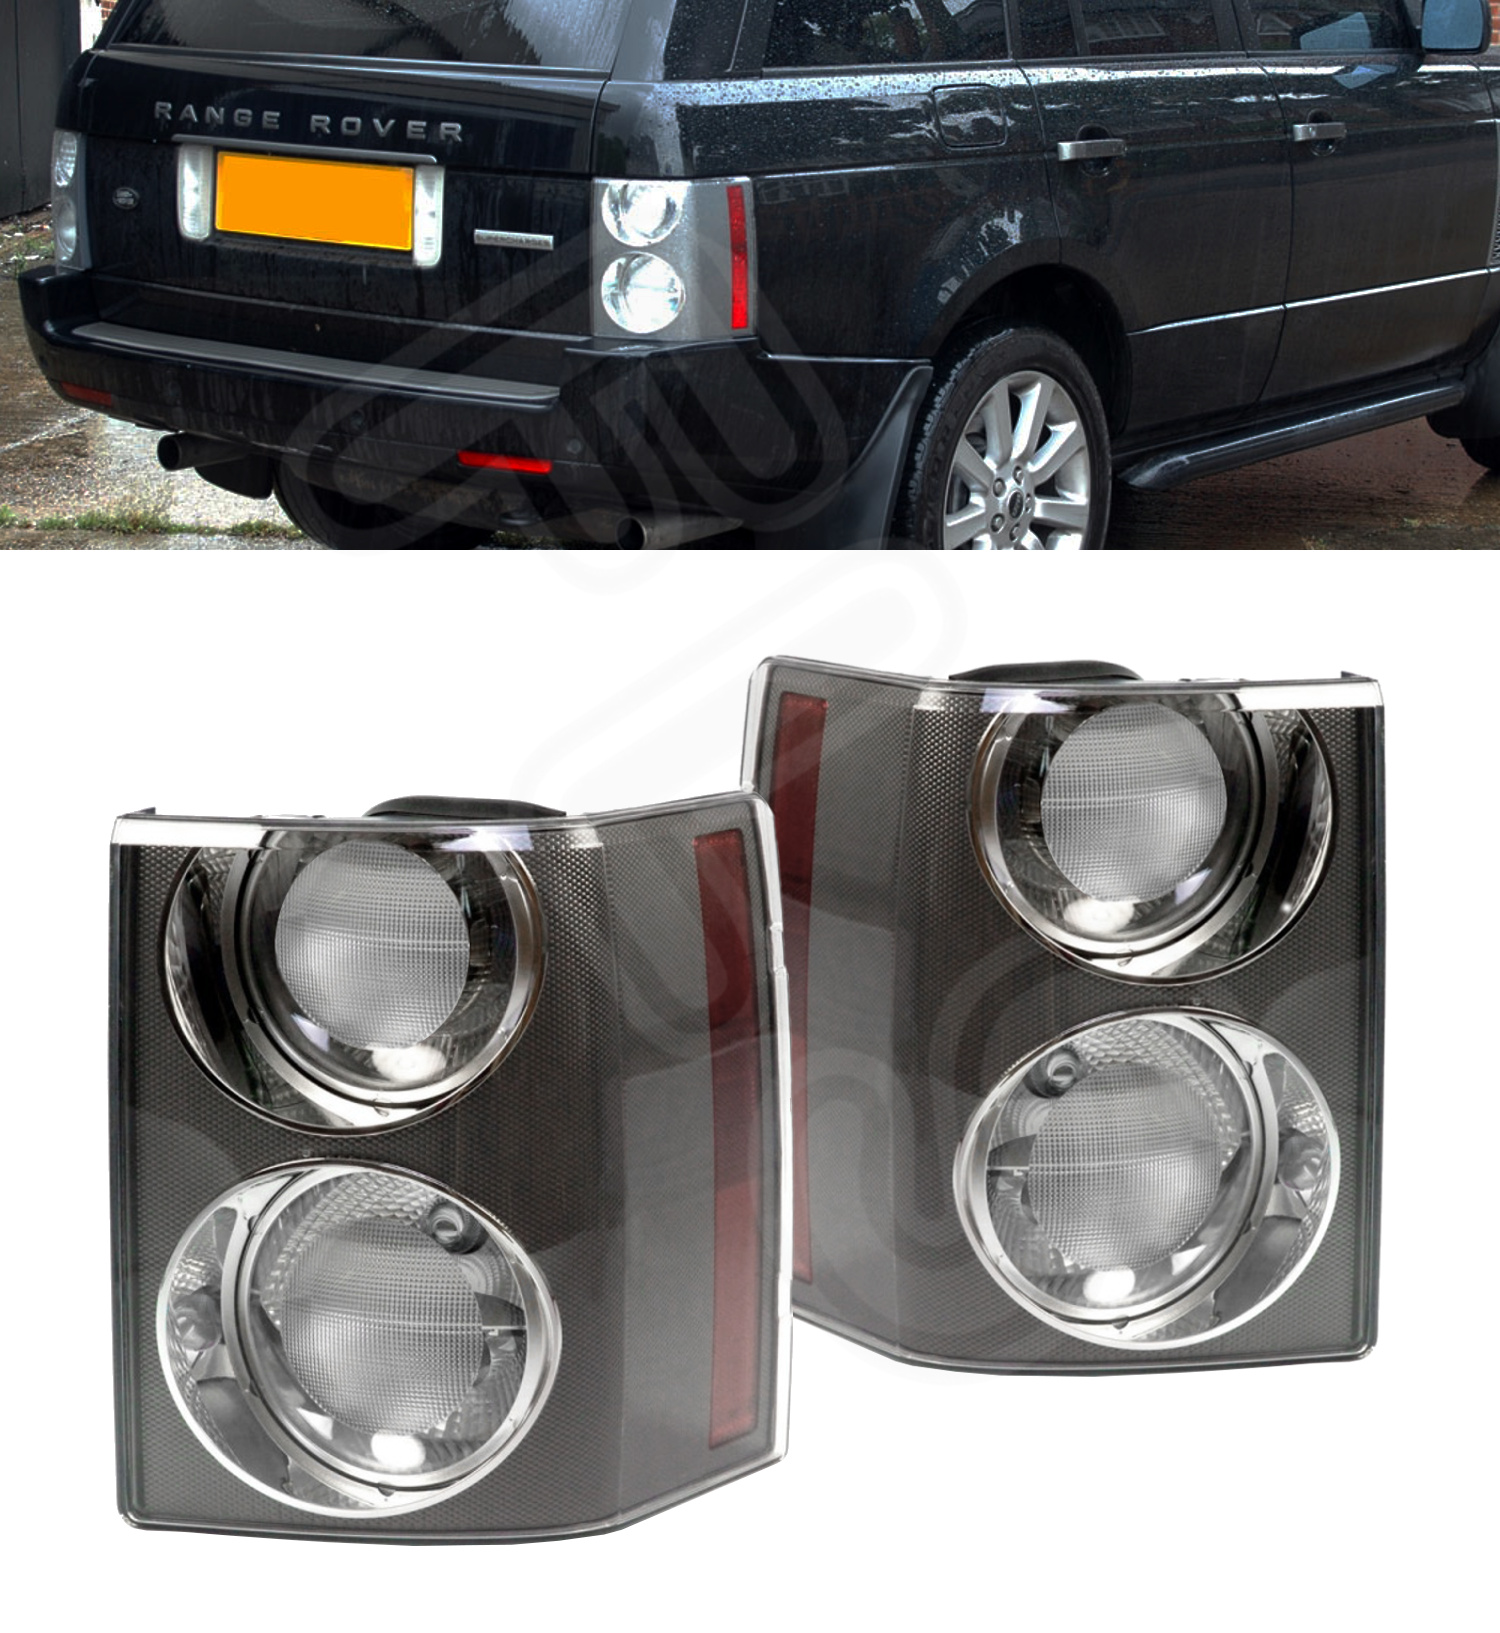 Pair Of Clear Front Indicator Lights For Land Rover: RANGE ROVER VOGUE L322 '02-'09 REAR TAIL LIGHT CLUSTER